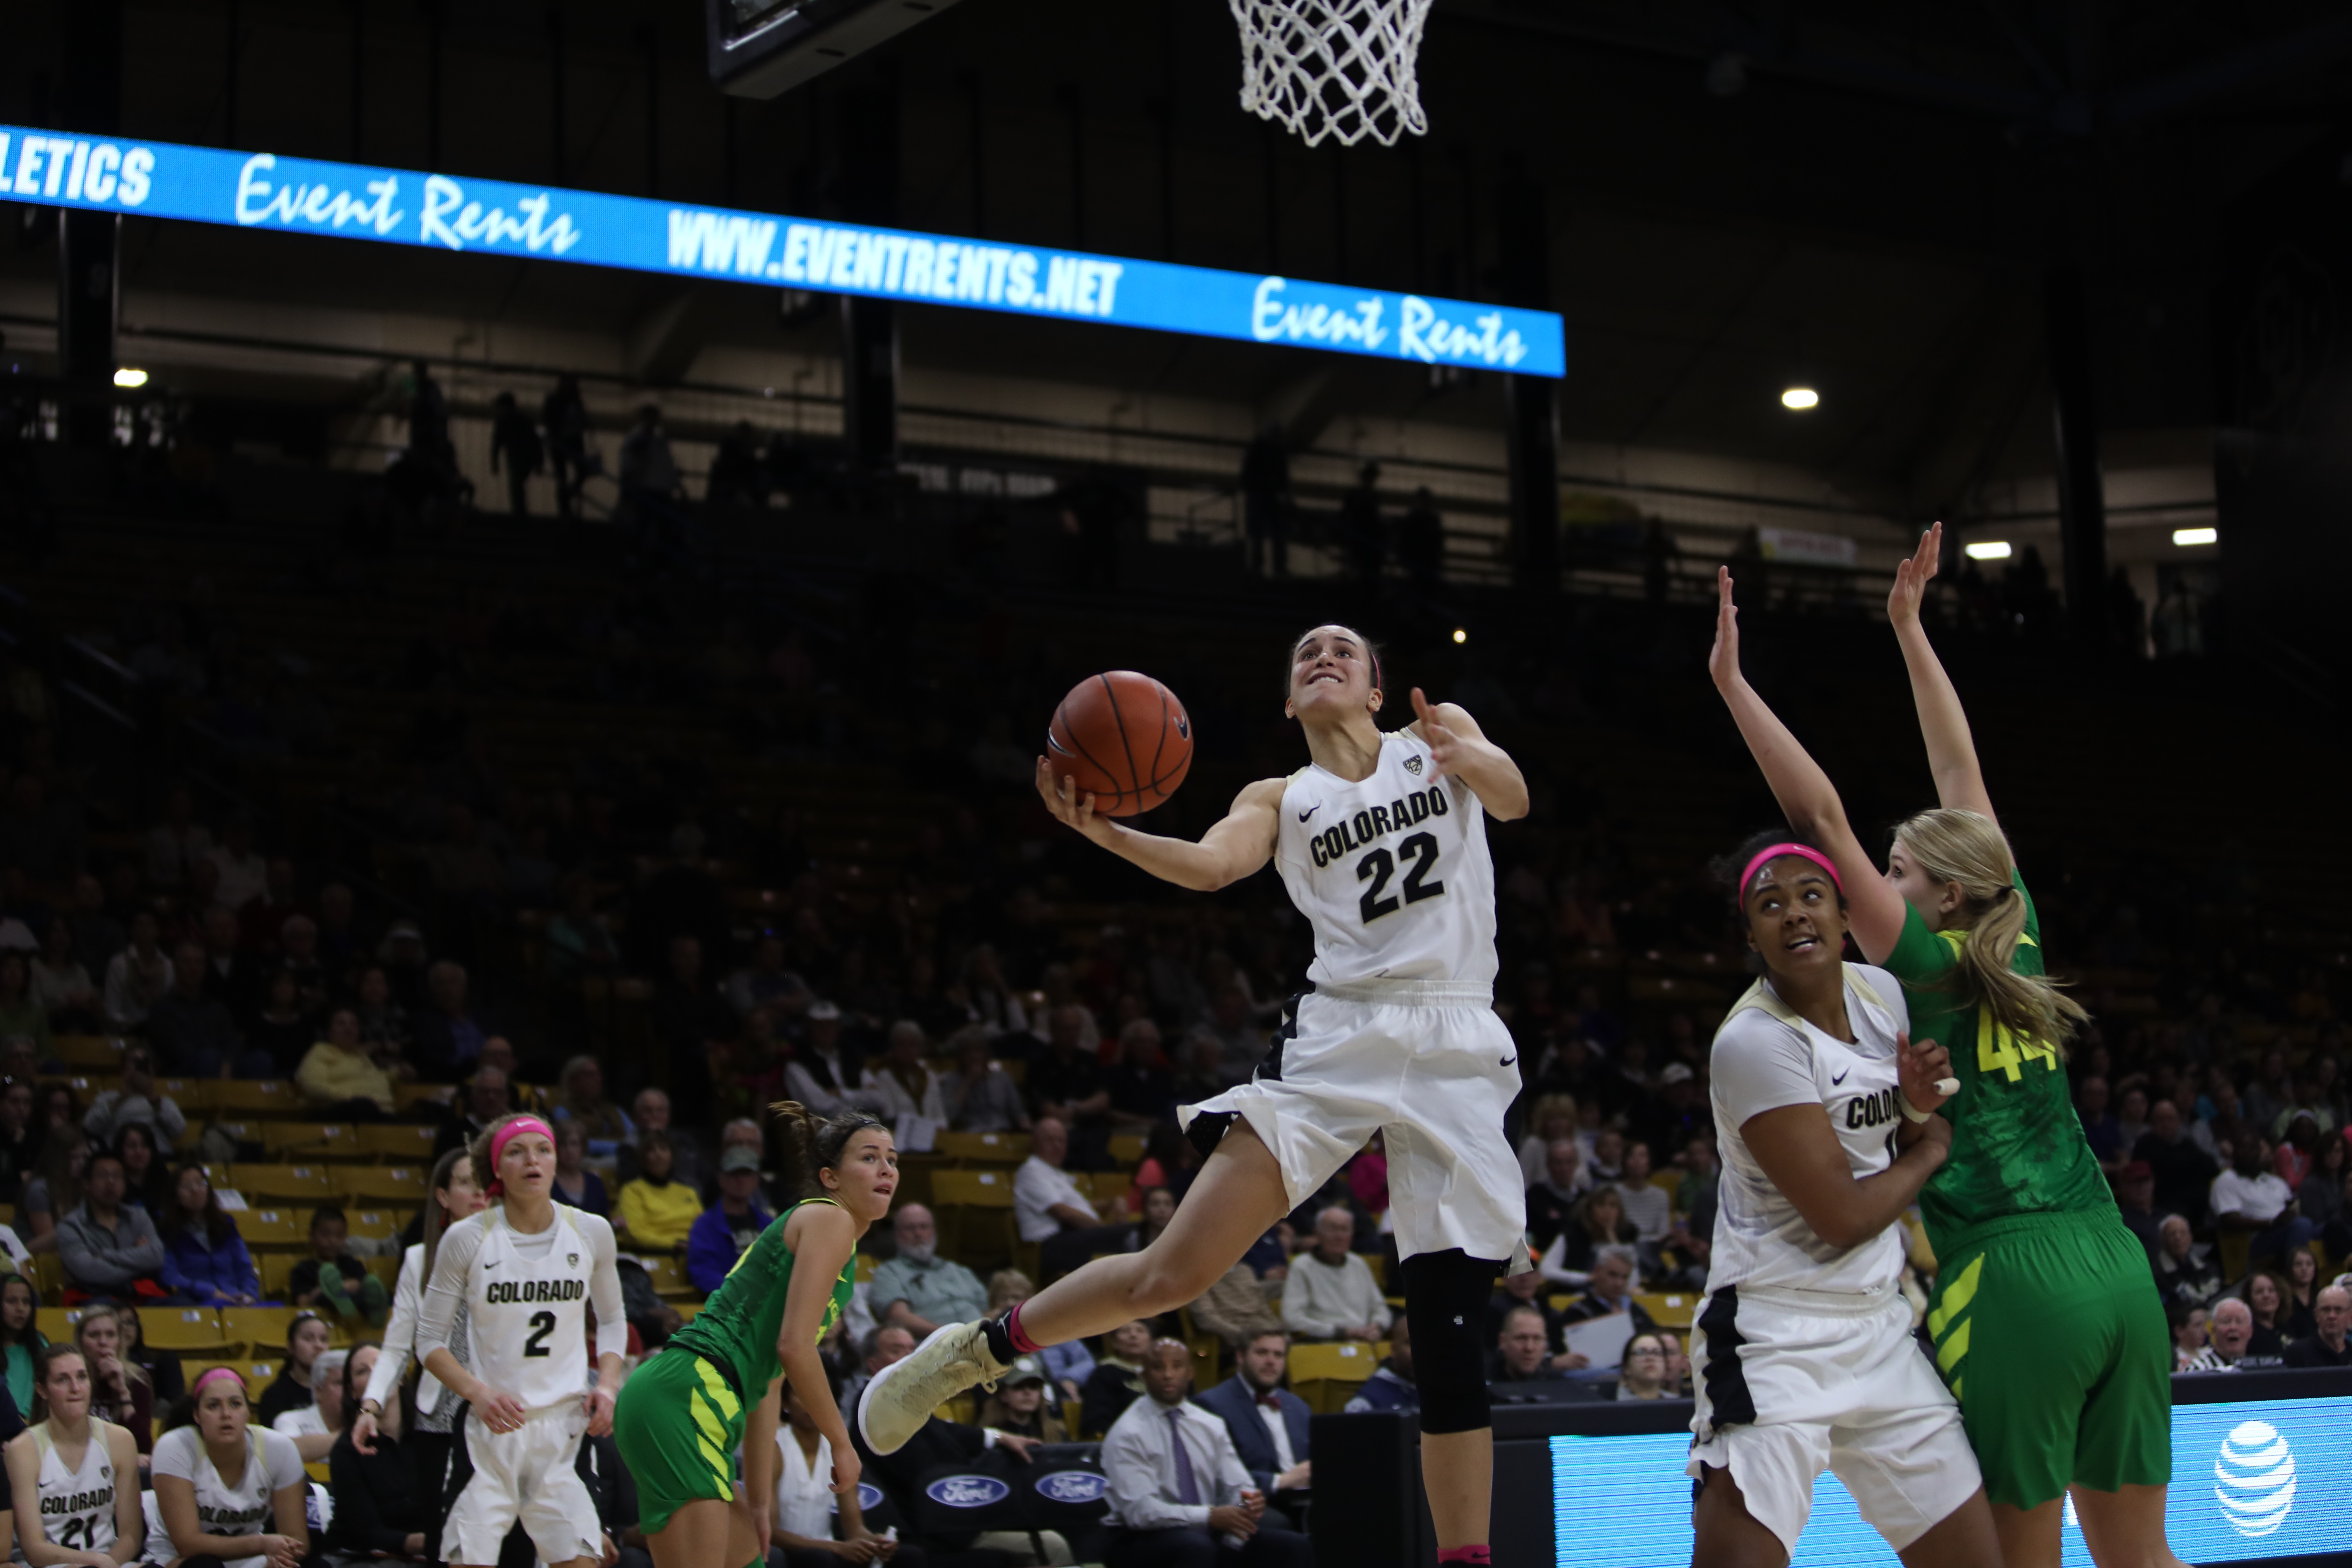 Smith notches 1,000 career points and leads Colorado past Oregon 76-66